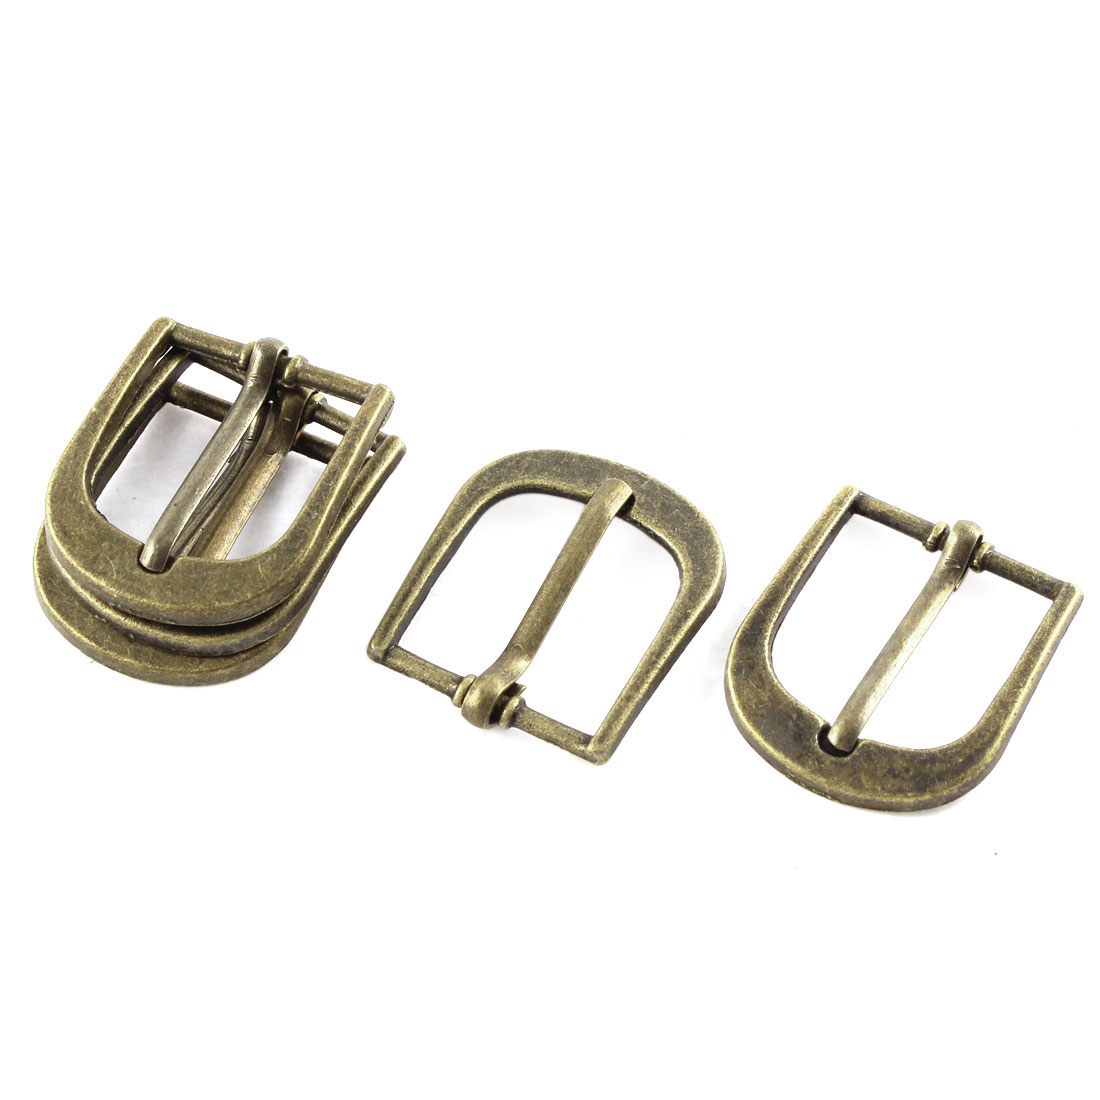 5pcs 29mmx25mm Retro Style Bronze Tone Single Prong Horseshoe Belt Buckle